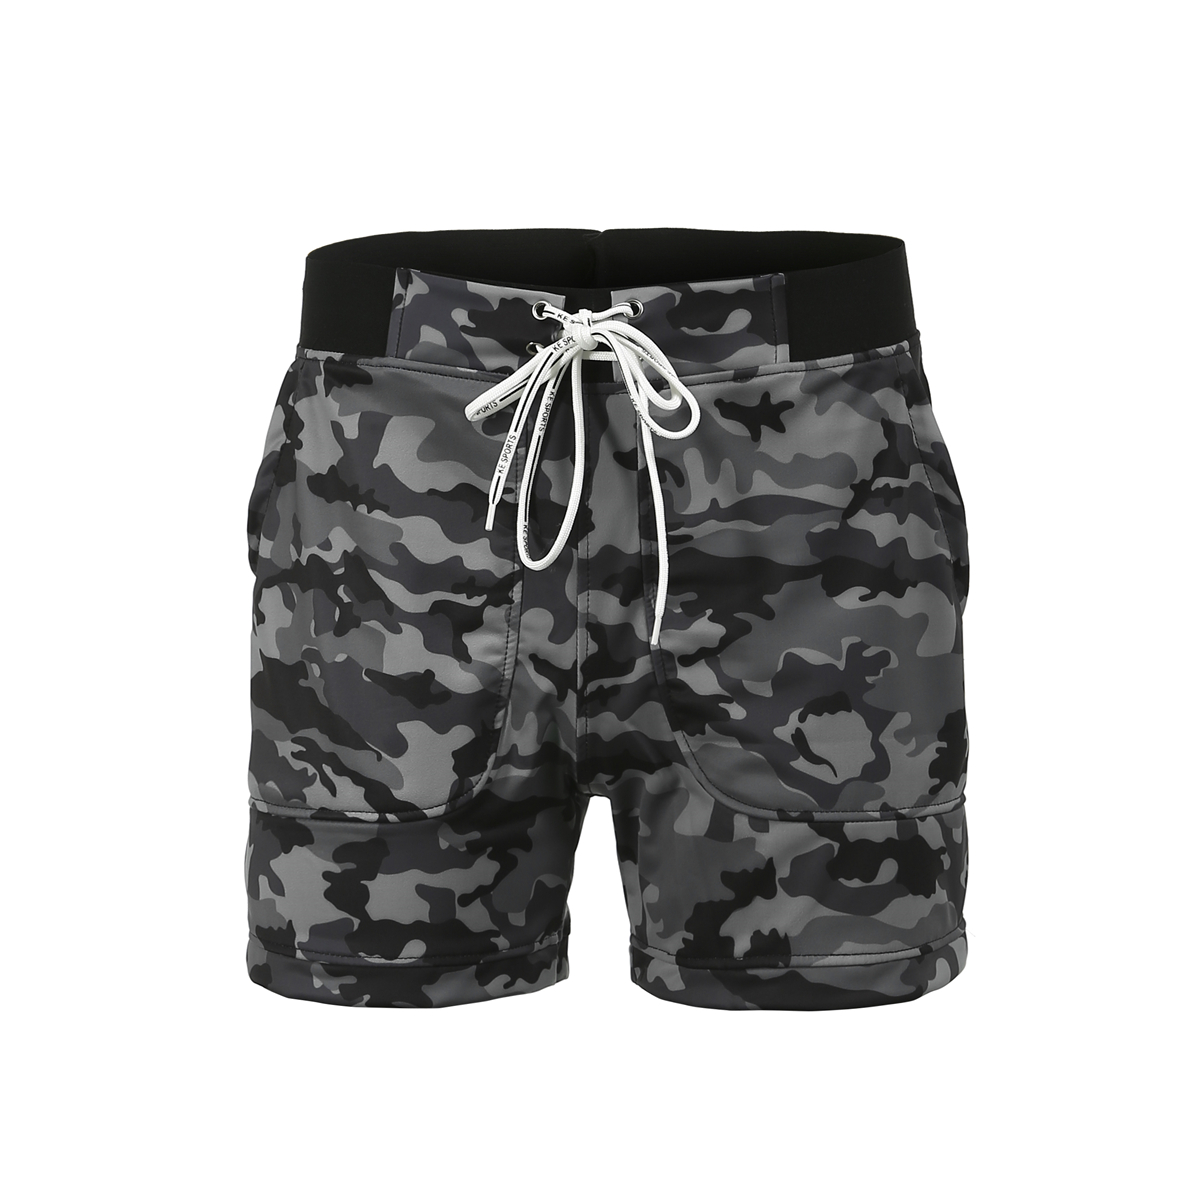 Men's Beachwear Summer Holiday Swim Trunks Quick Dry Striped Men's Quick Dry Swim Trunks Bathing Suit Striped Shorts With Pocket